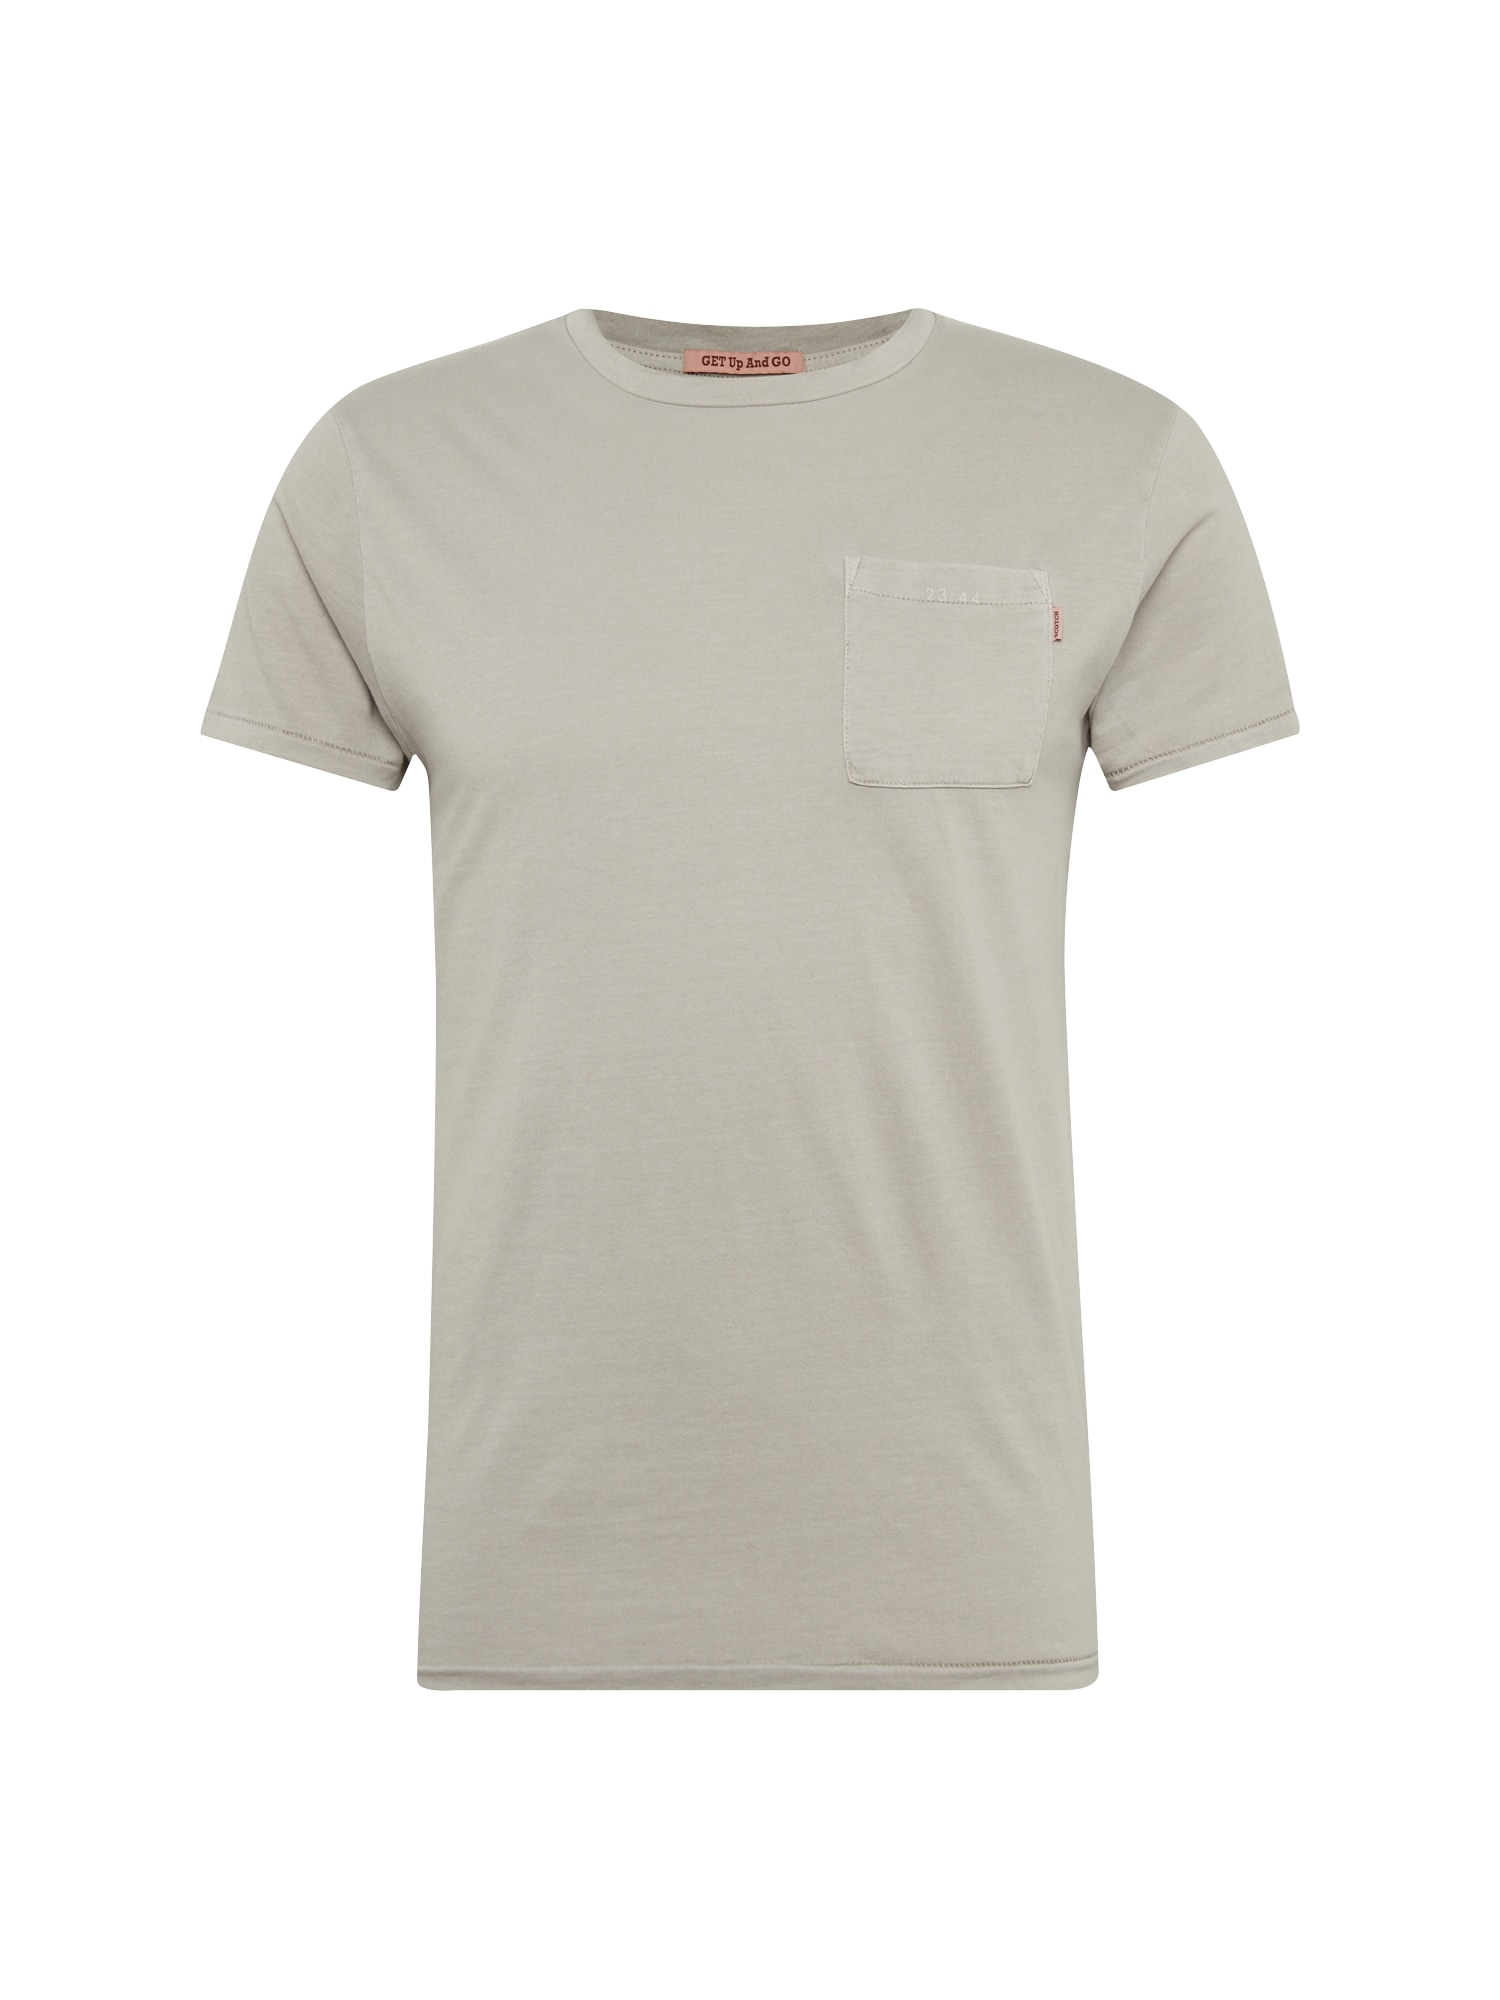 SCOTCH  and  SODA Heren Shirt Garment-dyed tee with chest pocket lichtgrijs